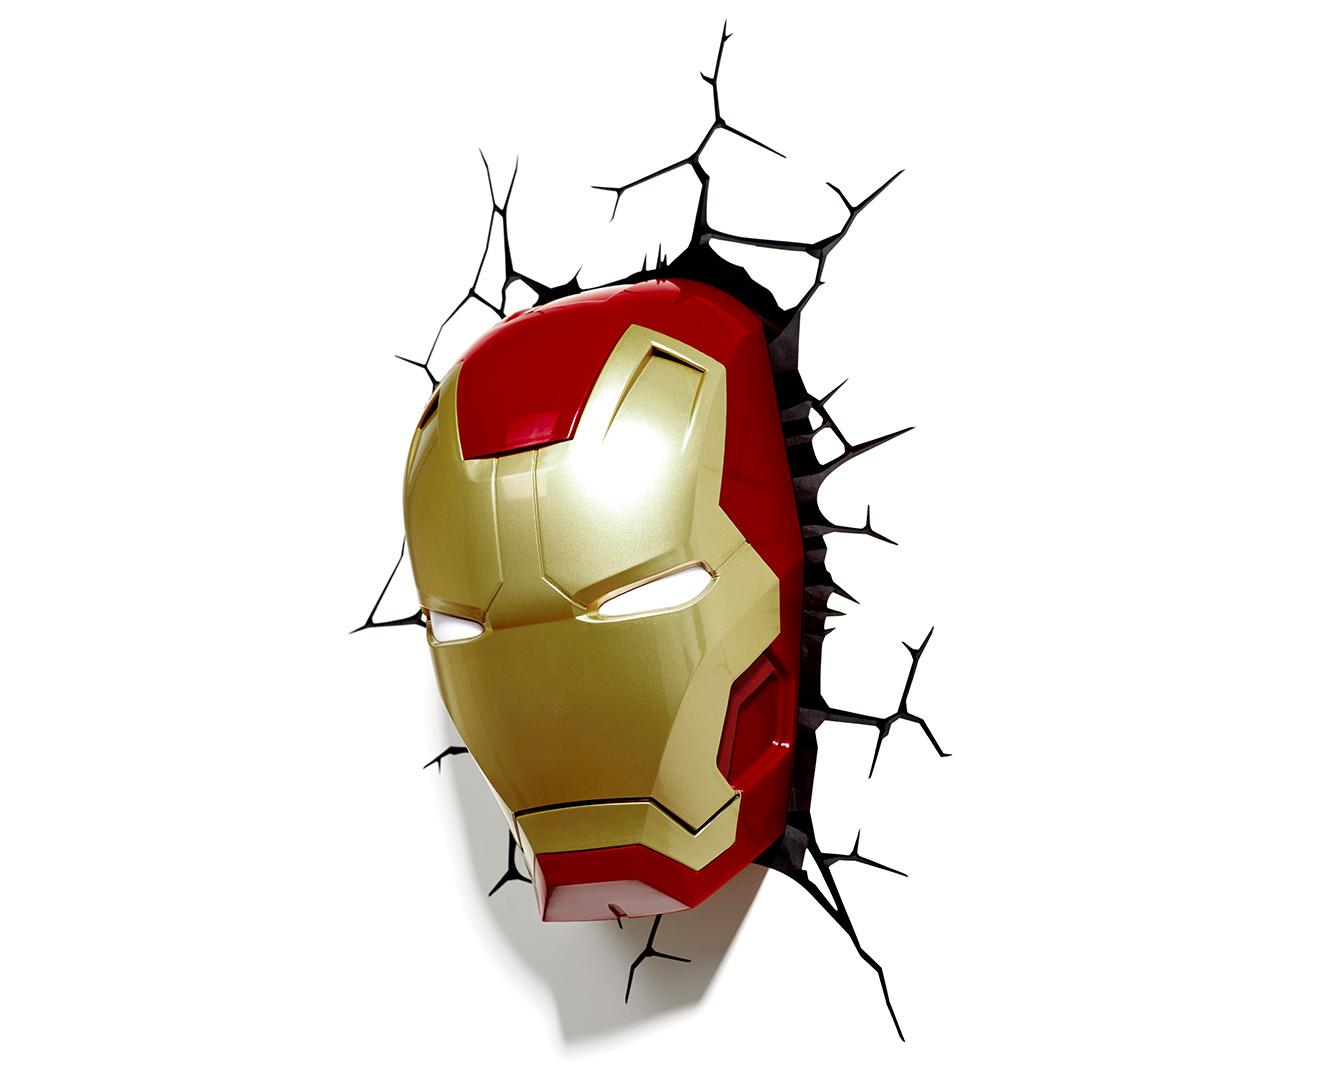 3d marvel iron man mask wall light red great daily deals at 3d marvel iron man mask wall light red great daily deals at australias favourite superstore catch aloadofball Images